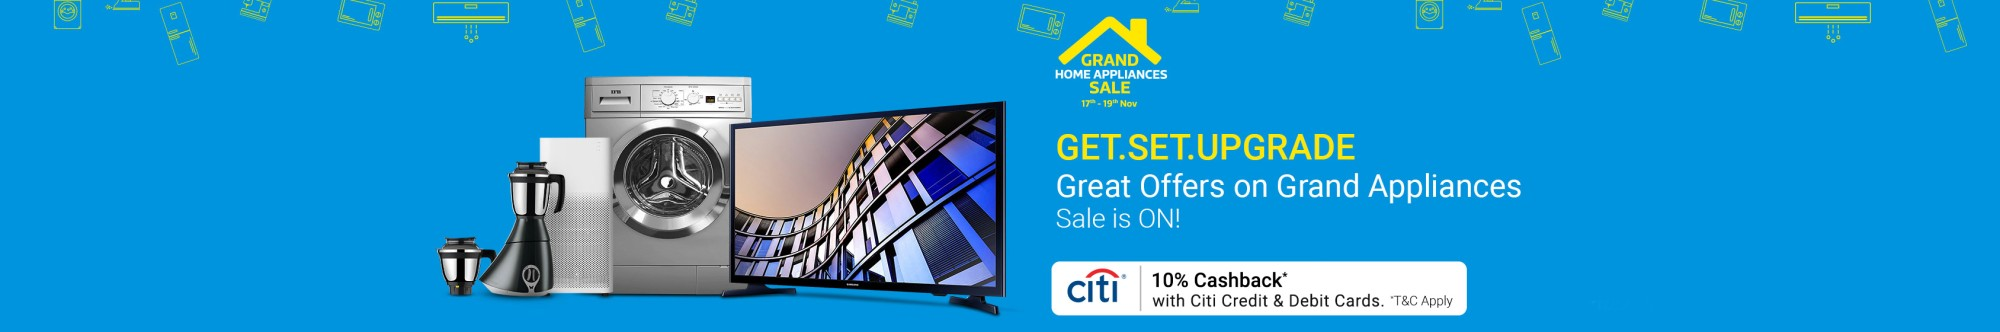 Flipkart Grand Home TVS and Home Appliances offer coupons